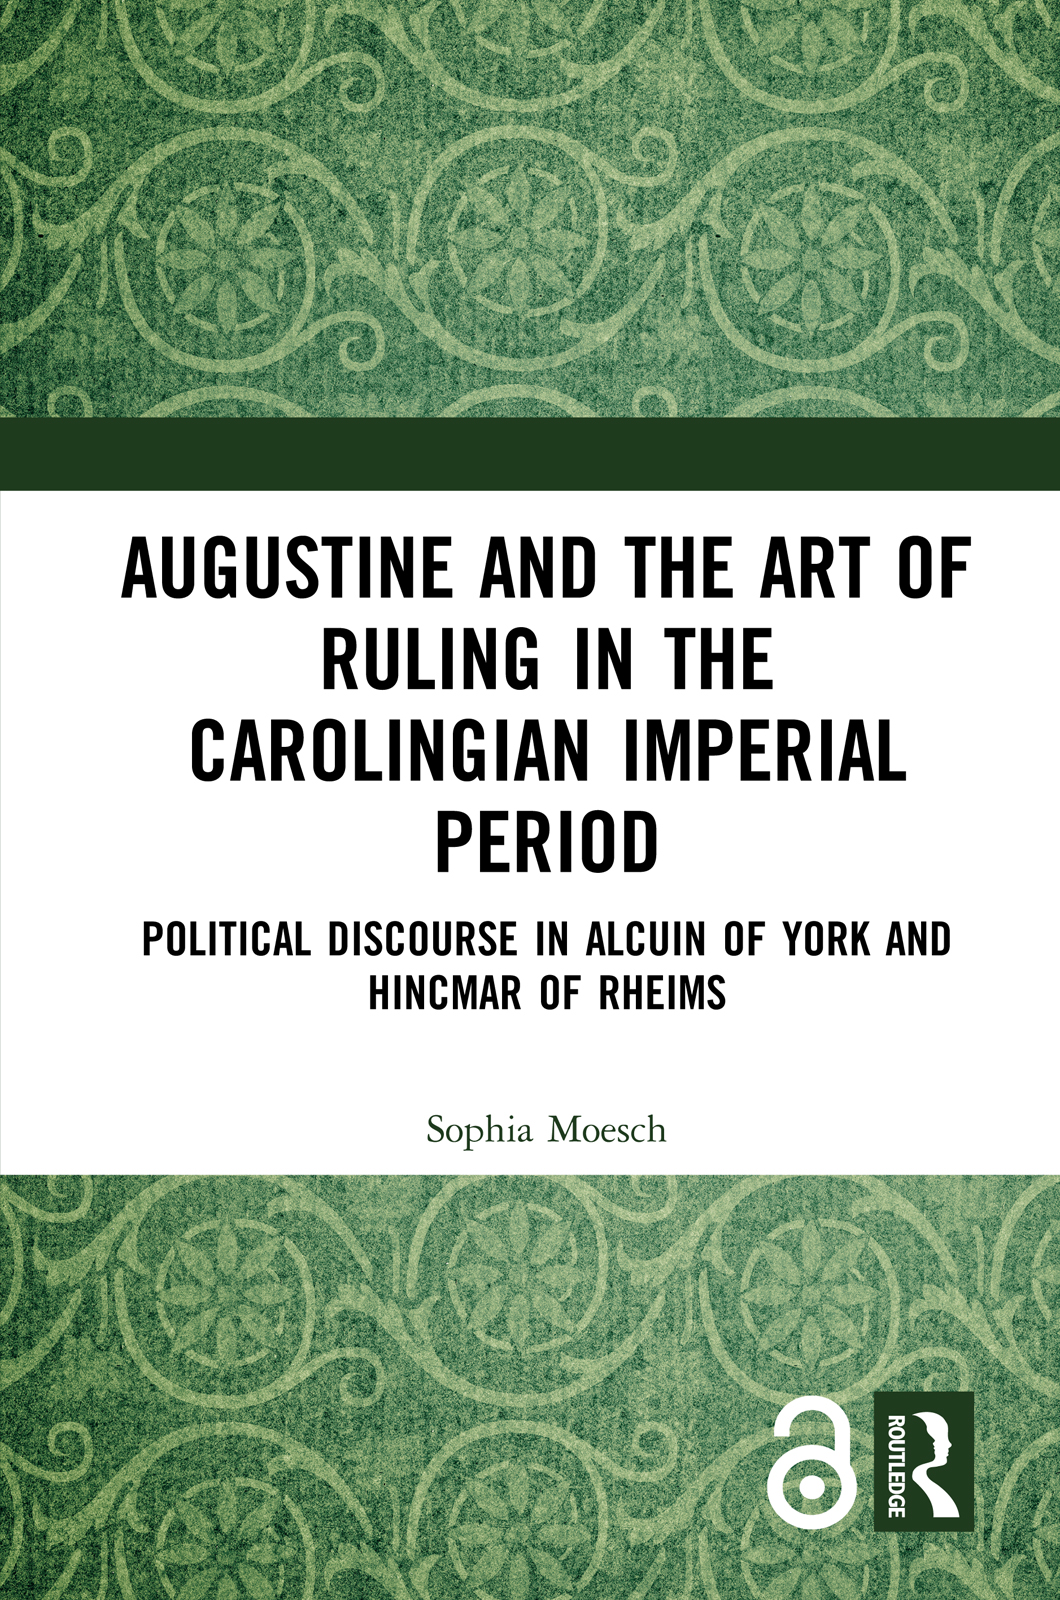 Augustine and the Art of Ruling in the Carolingian Imperial Period (Open Access)